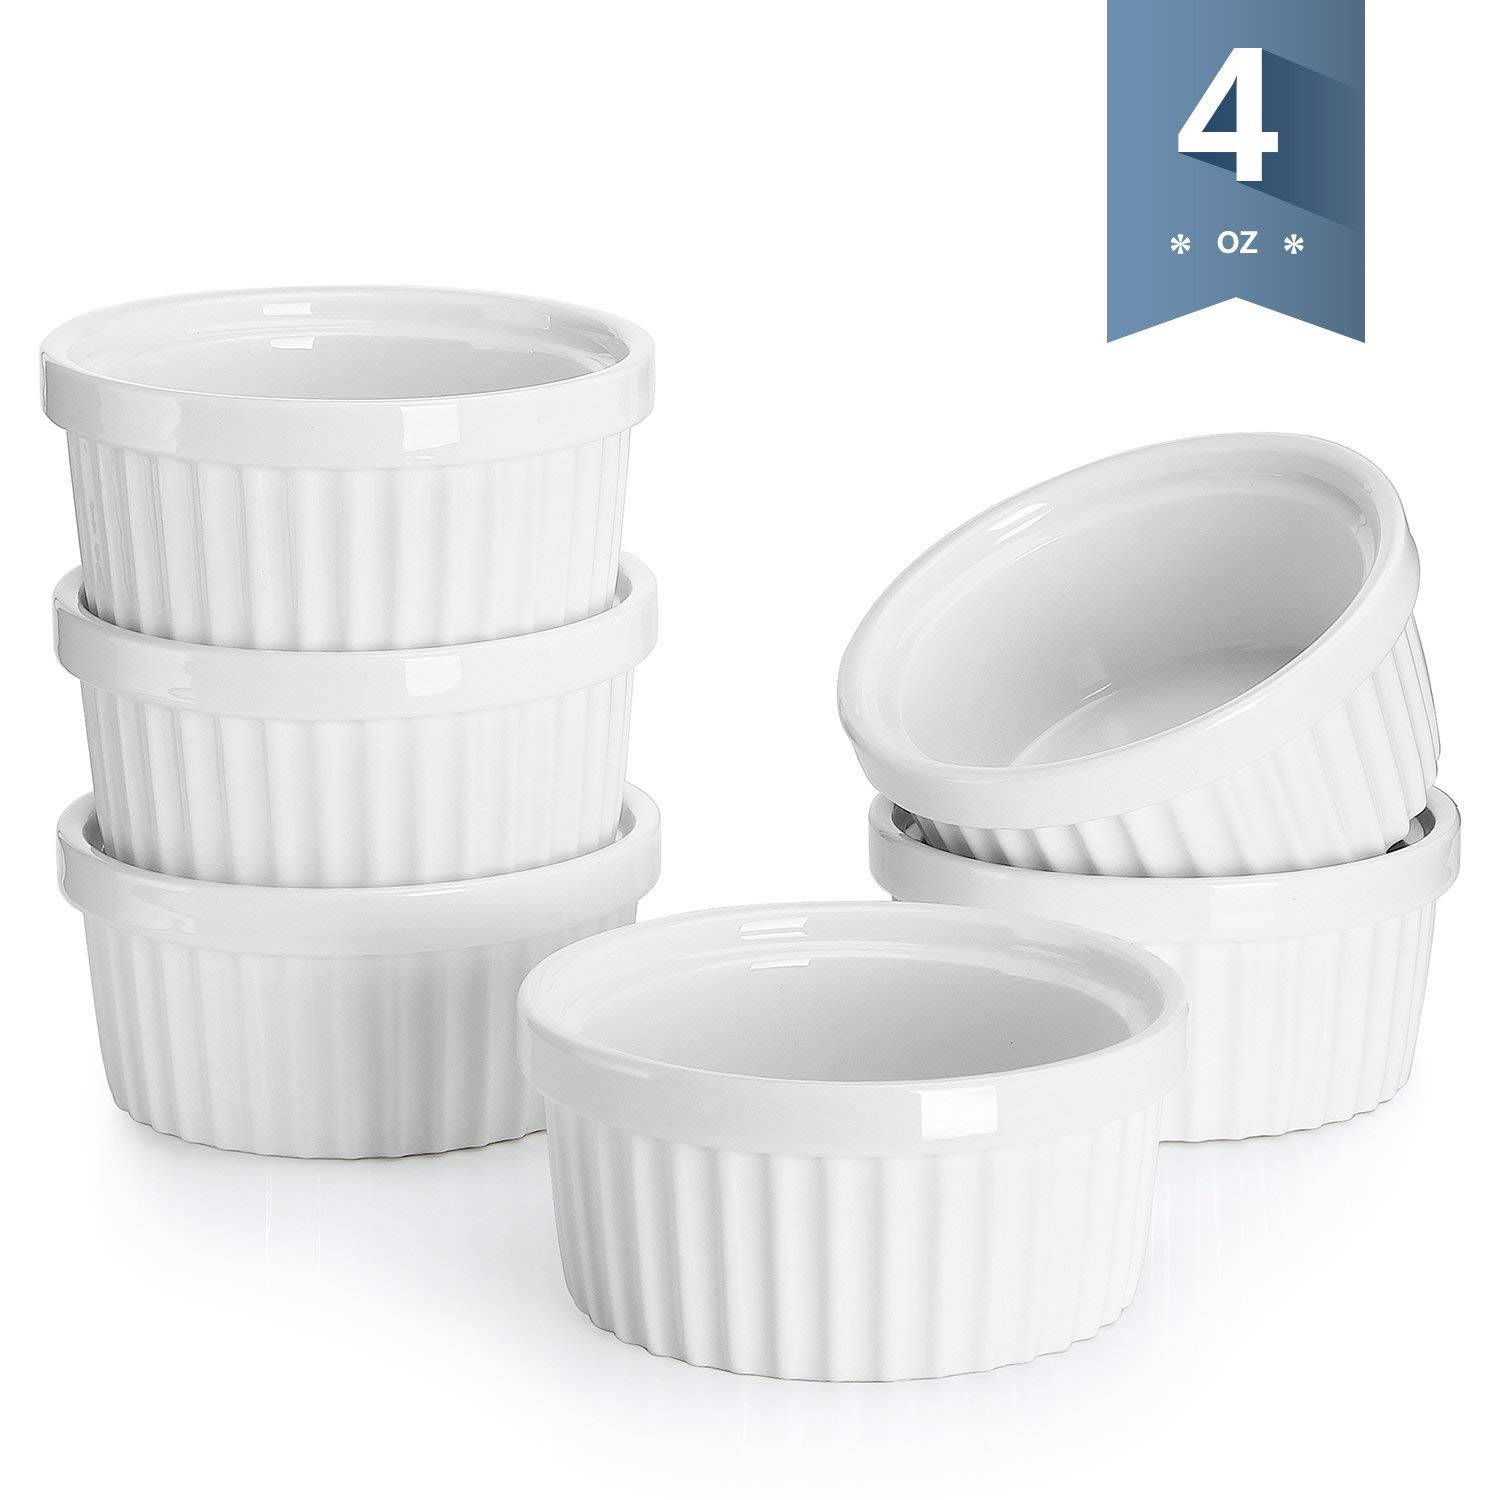 Sweese 5107 Porcelain Souffle Dishes, Ramekins - 4 Ounce for Souffle, Creme Brulee and Dipping Sauces - Set of 6, White